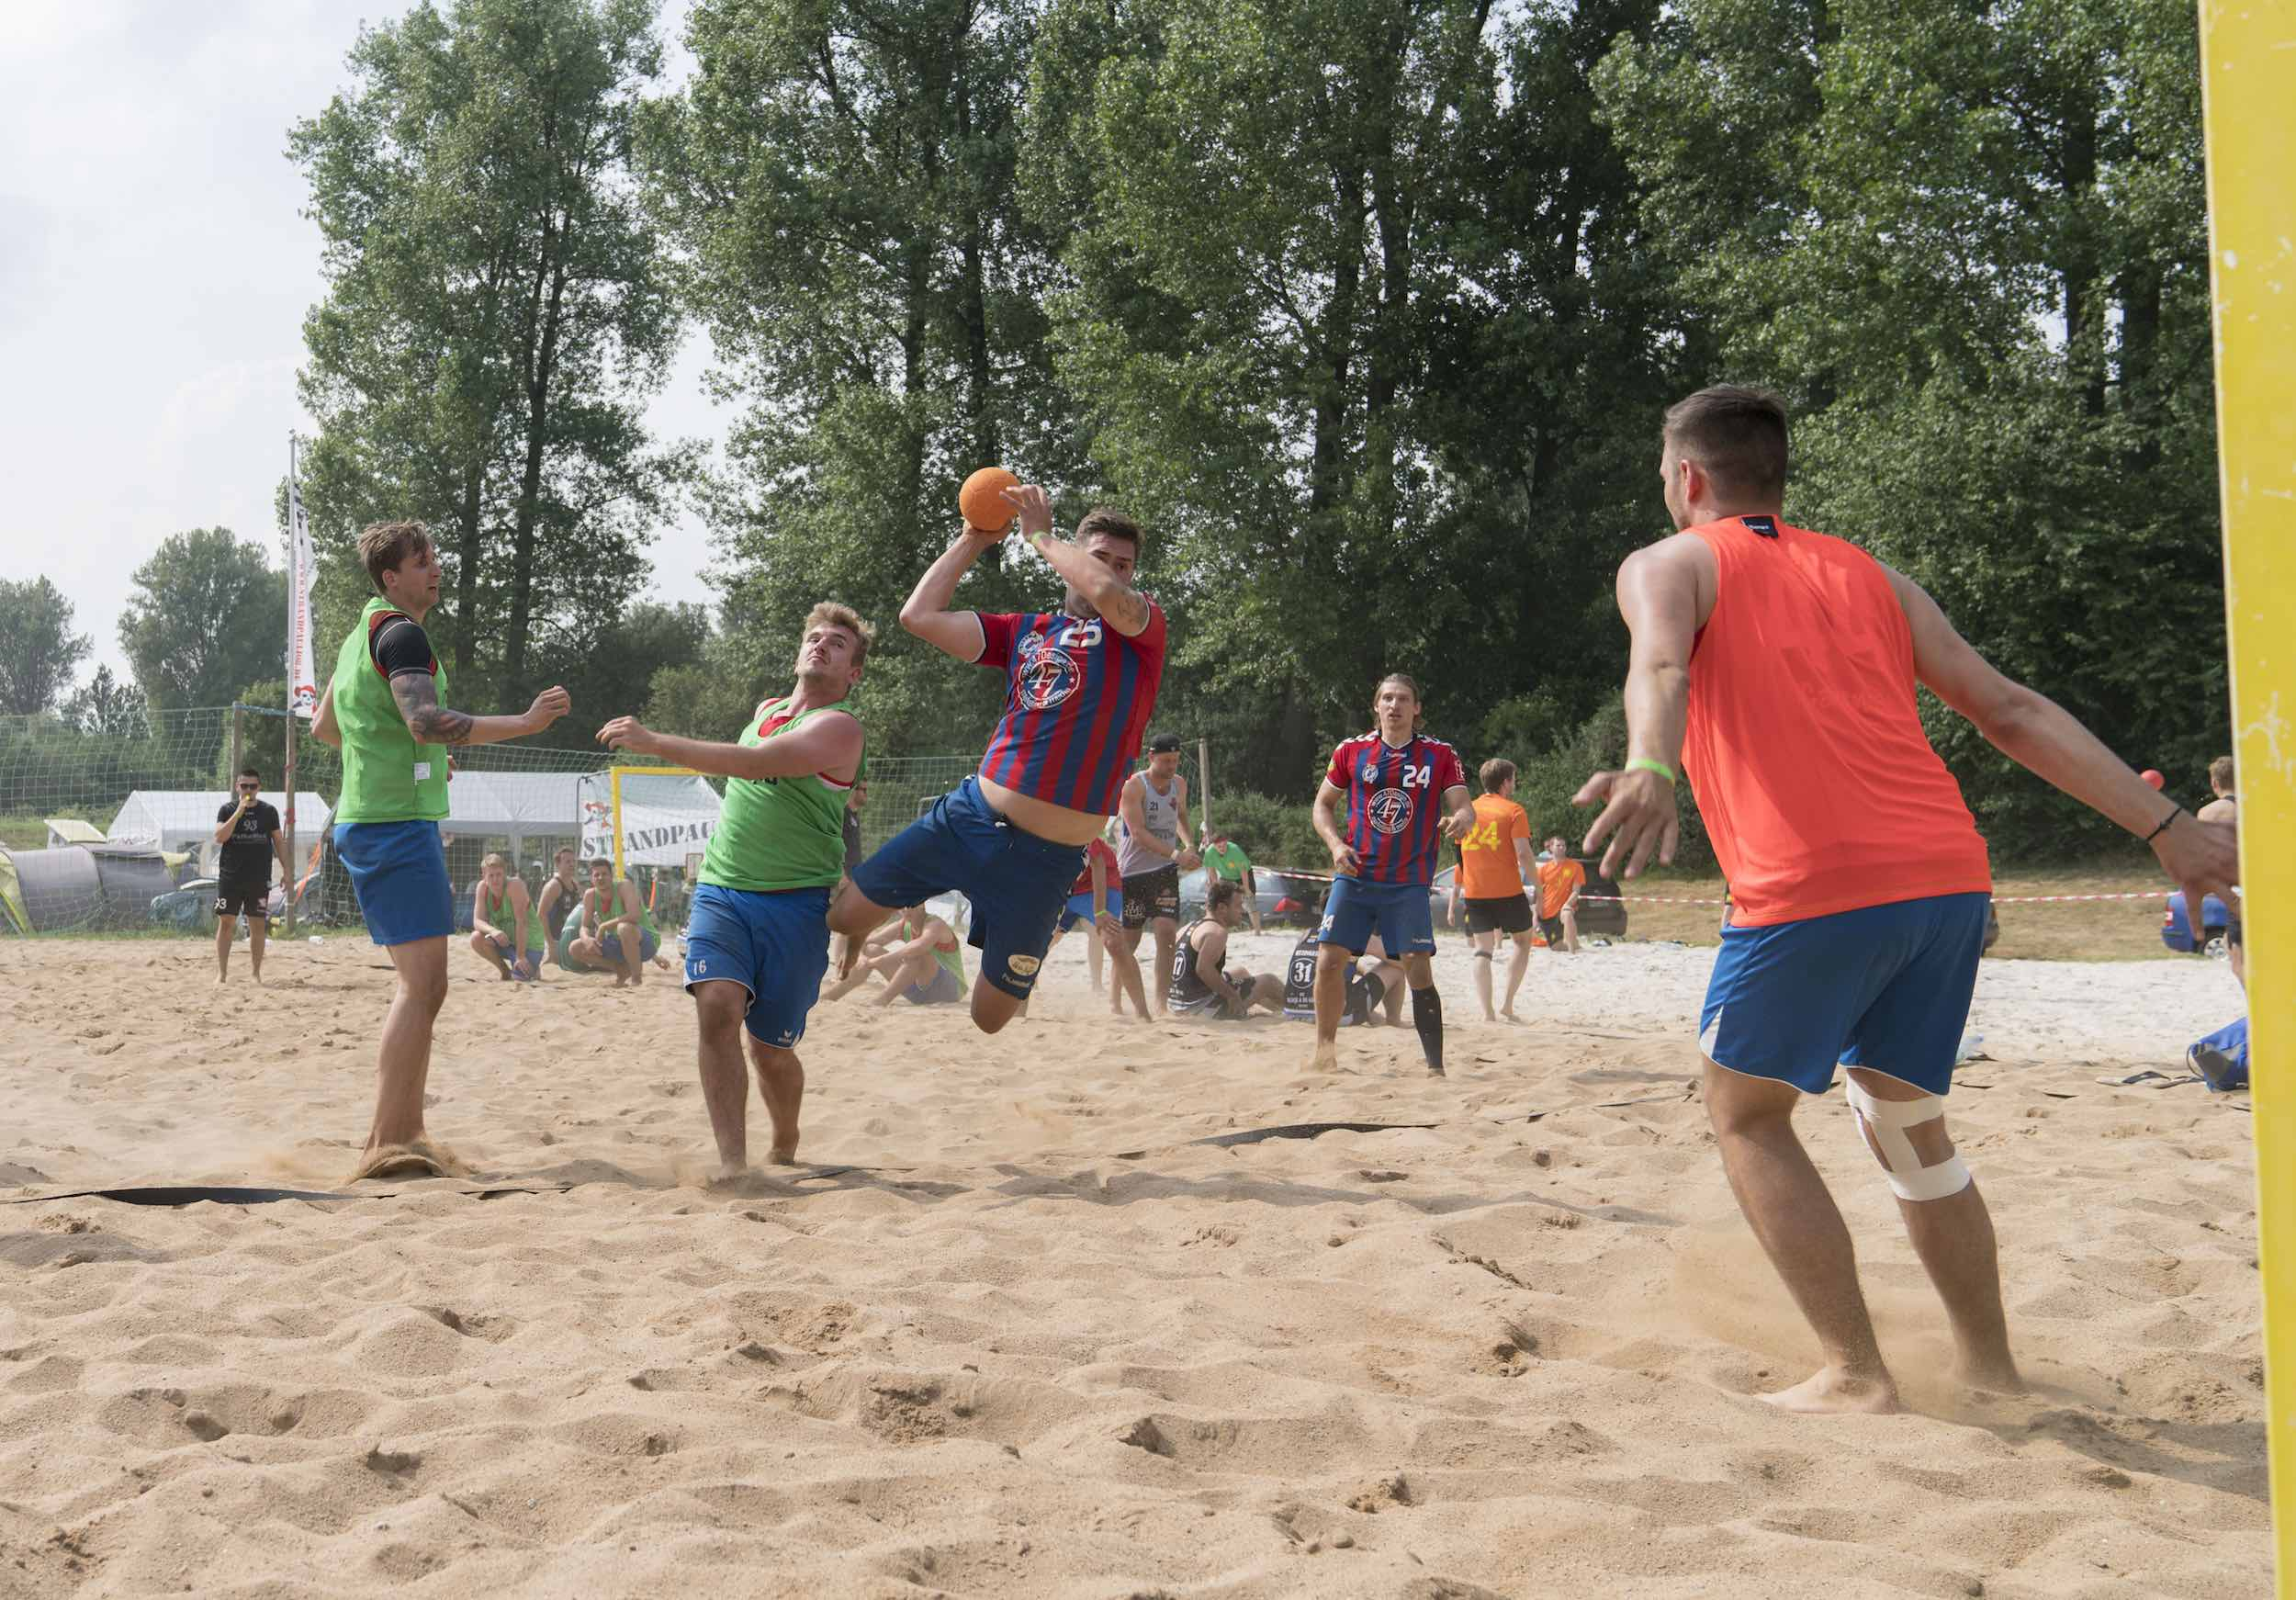 Hannover Beachhandball mit dem dreckigen Dutzend and Friends